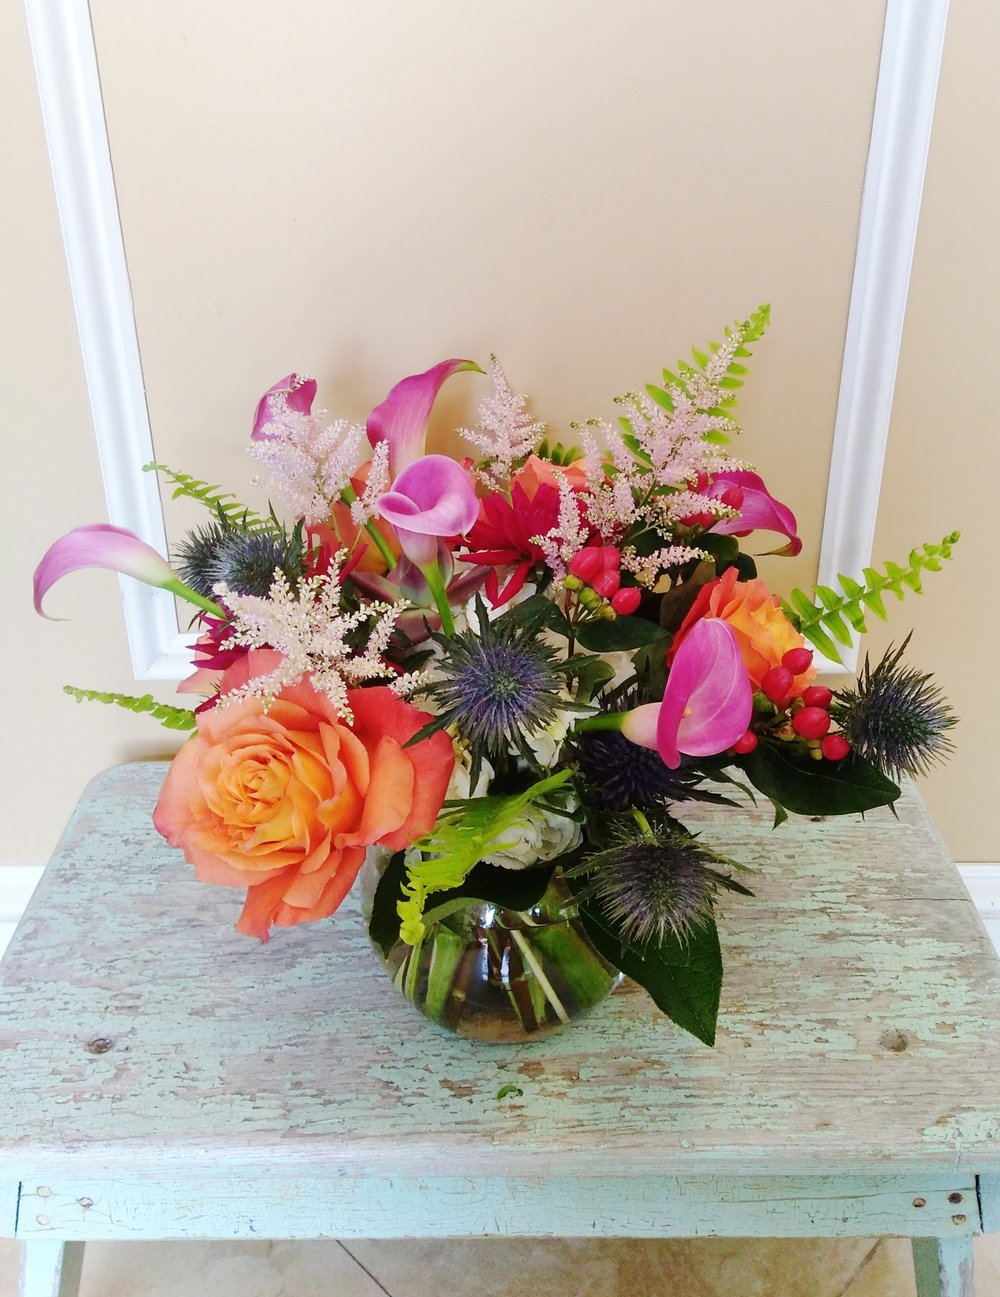 A5 $60-$85 Cluster-style arrangement. $75 as shown.